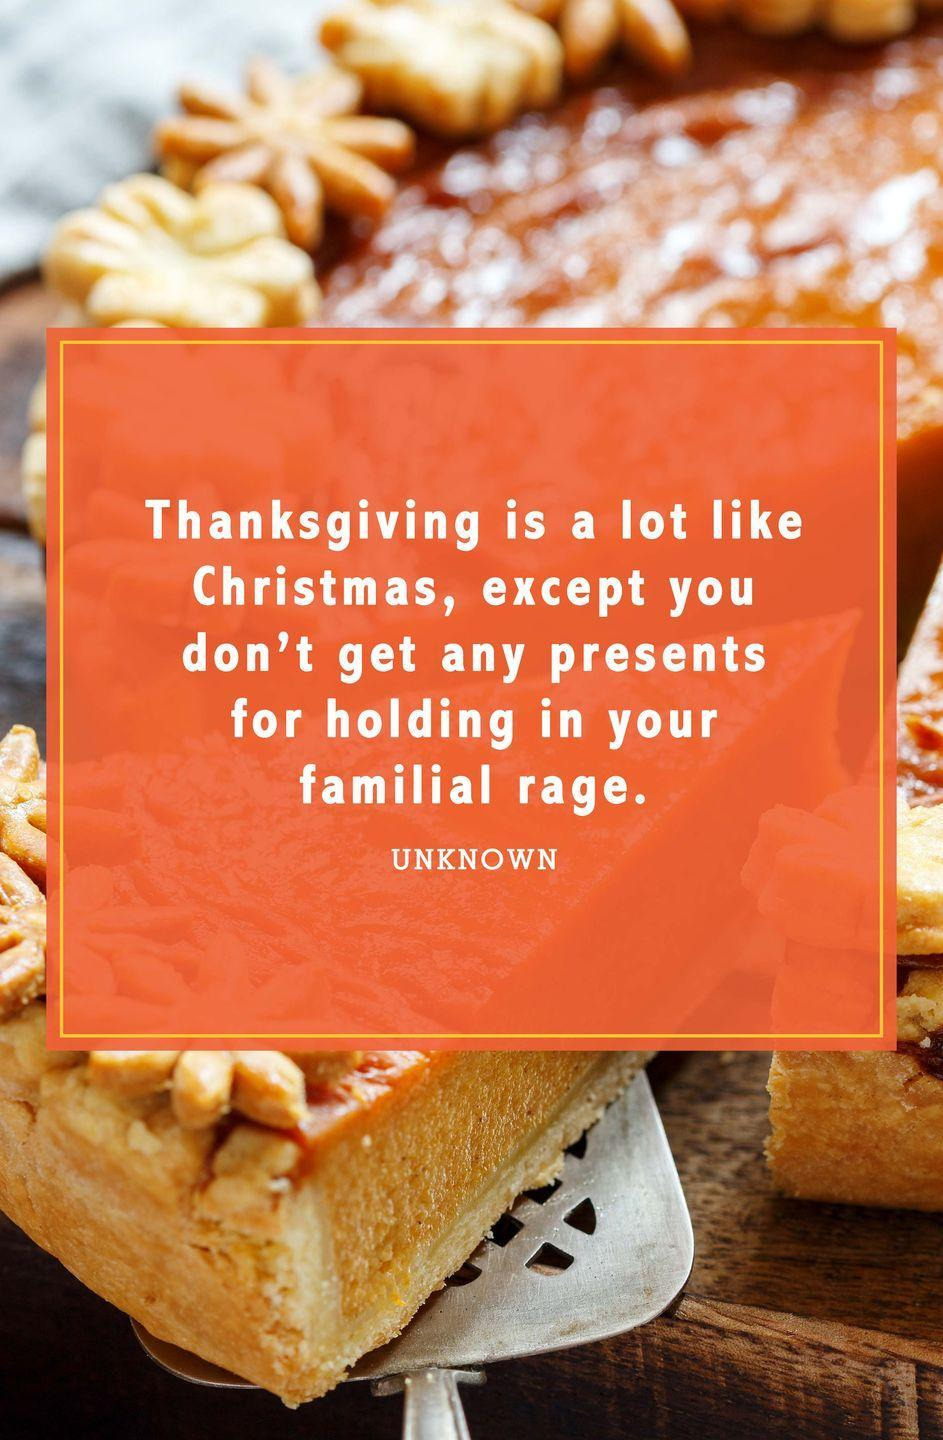 "<p>""Thanksgiving is a lot like Christmas, except you don't get any presents for holding in your familial rage.""</p>"